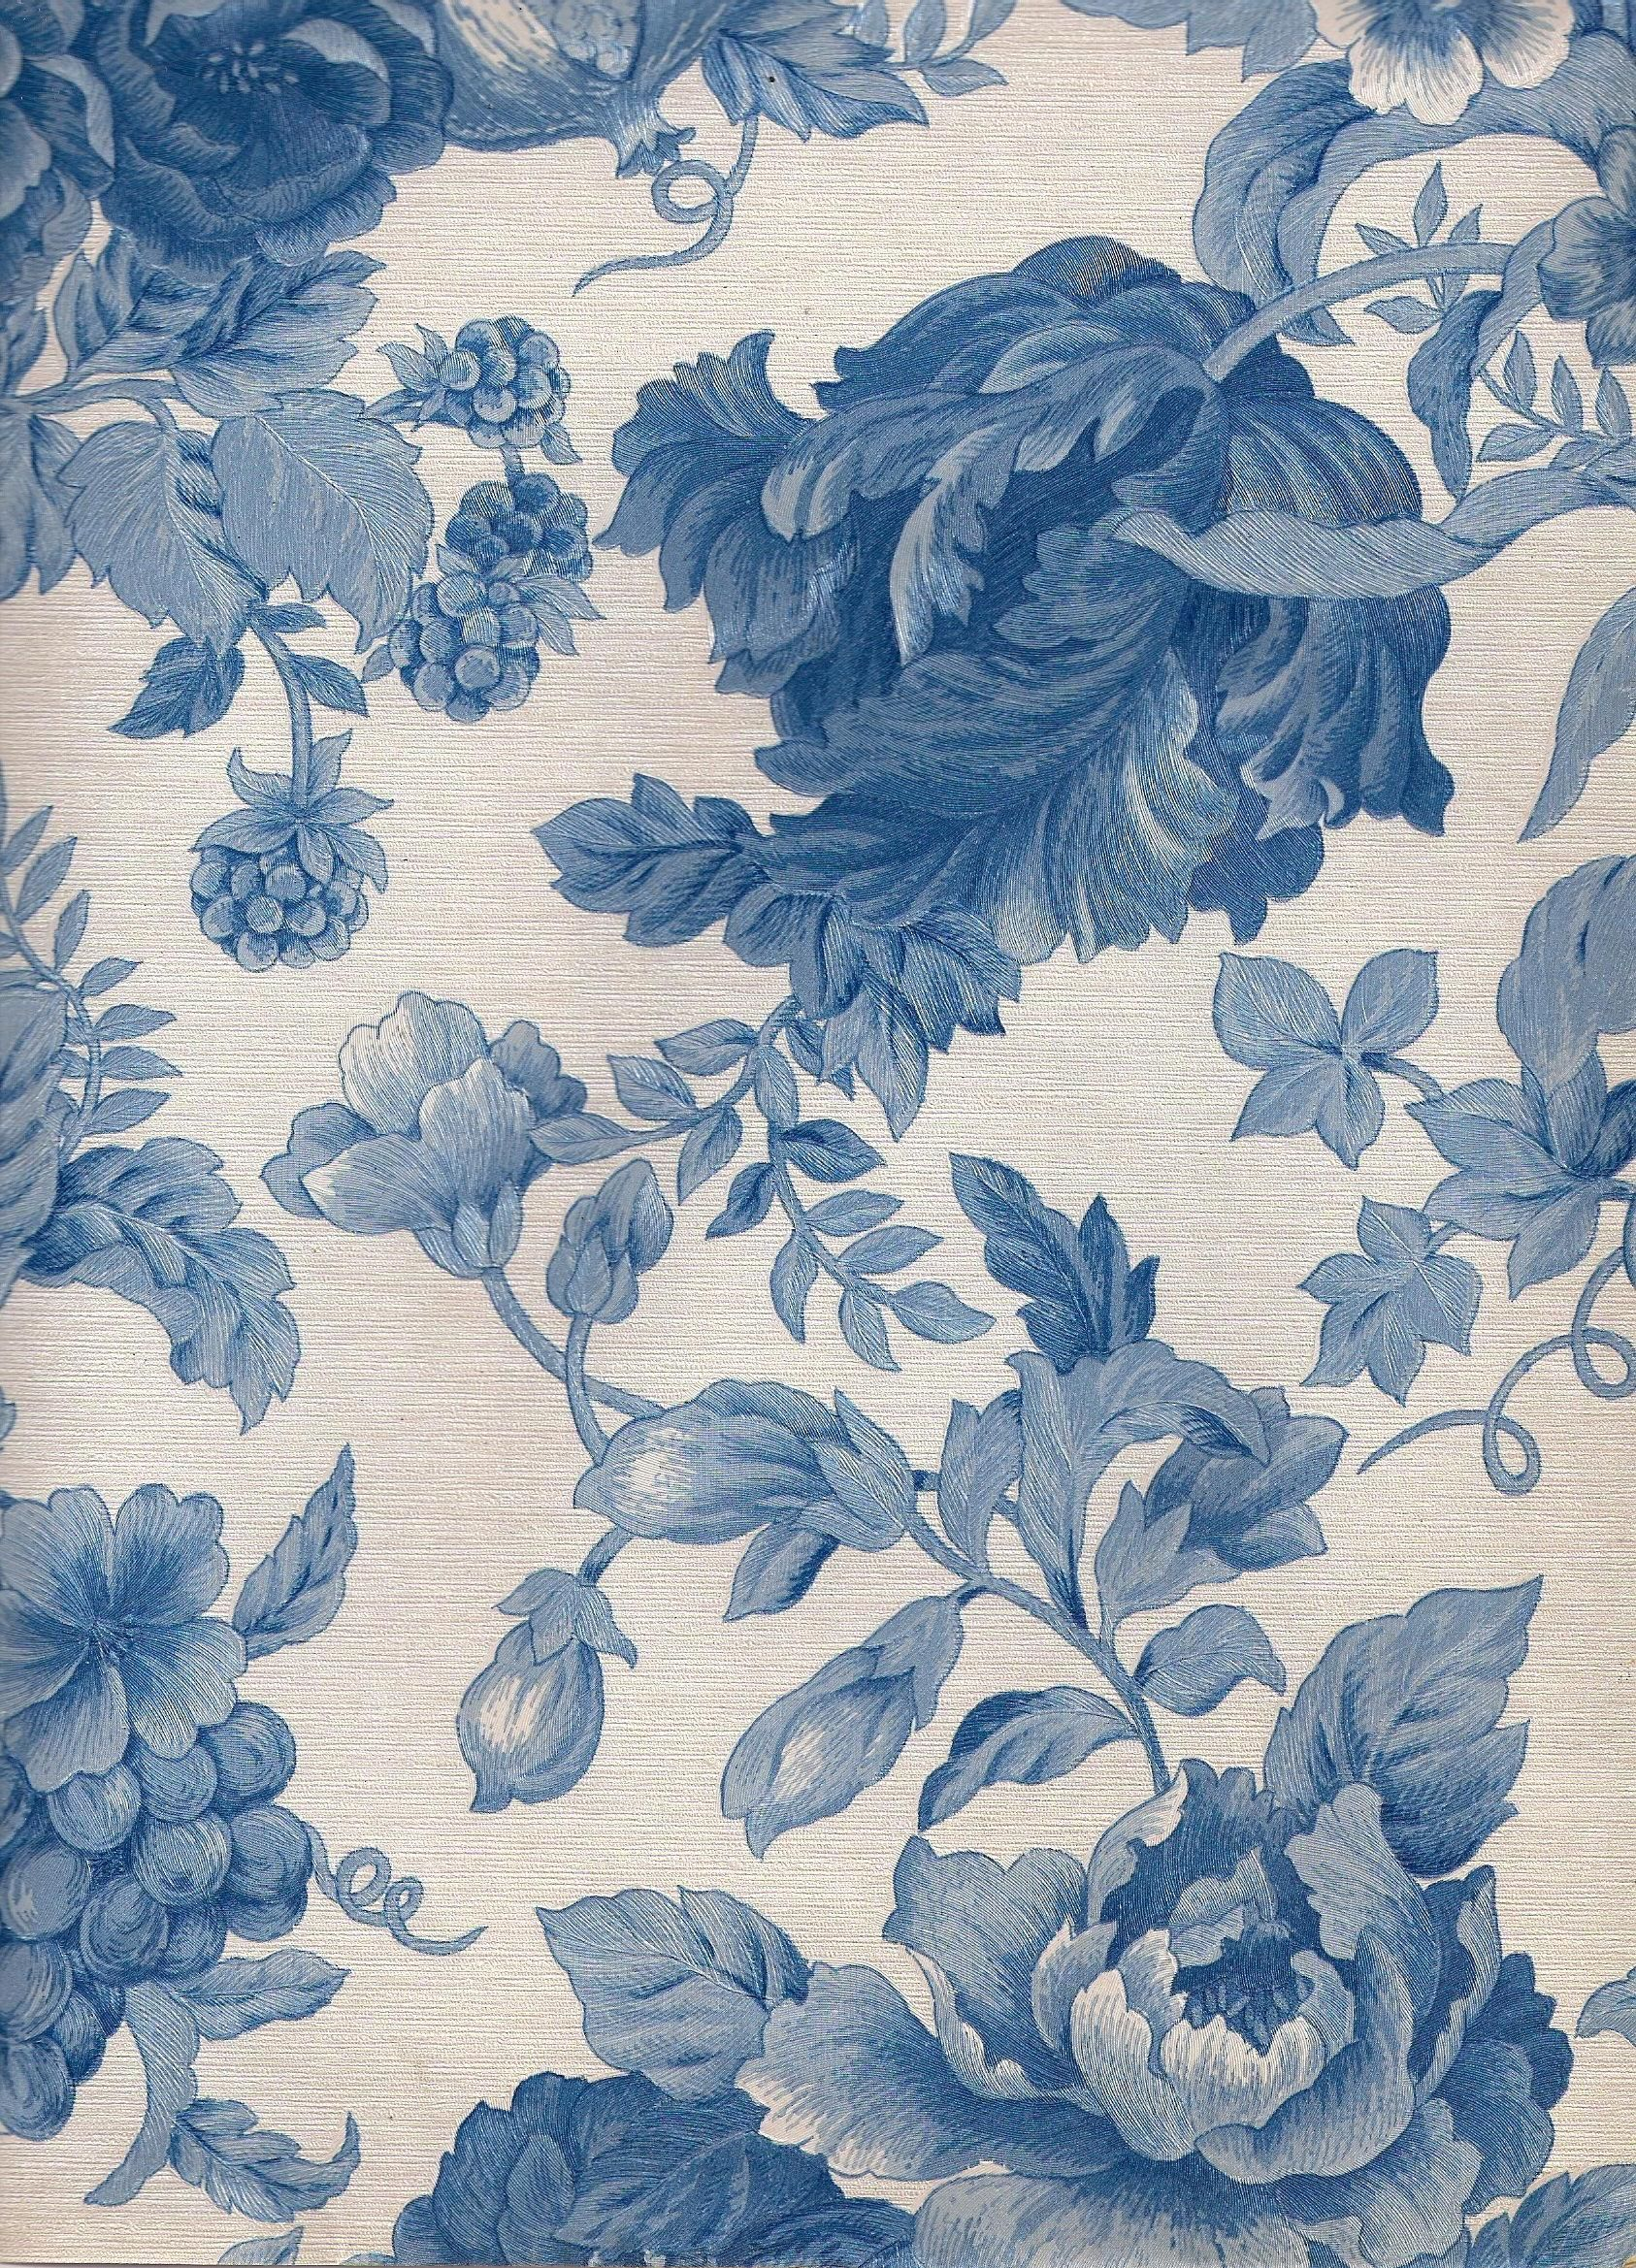 Old Fashioned Blue On White Blue Floral Wallpaper Blue Flower